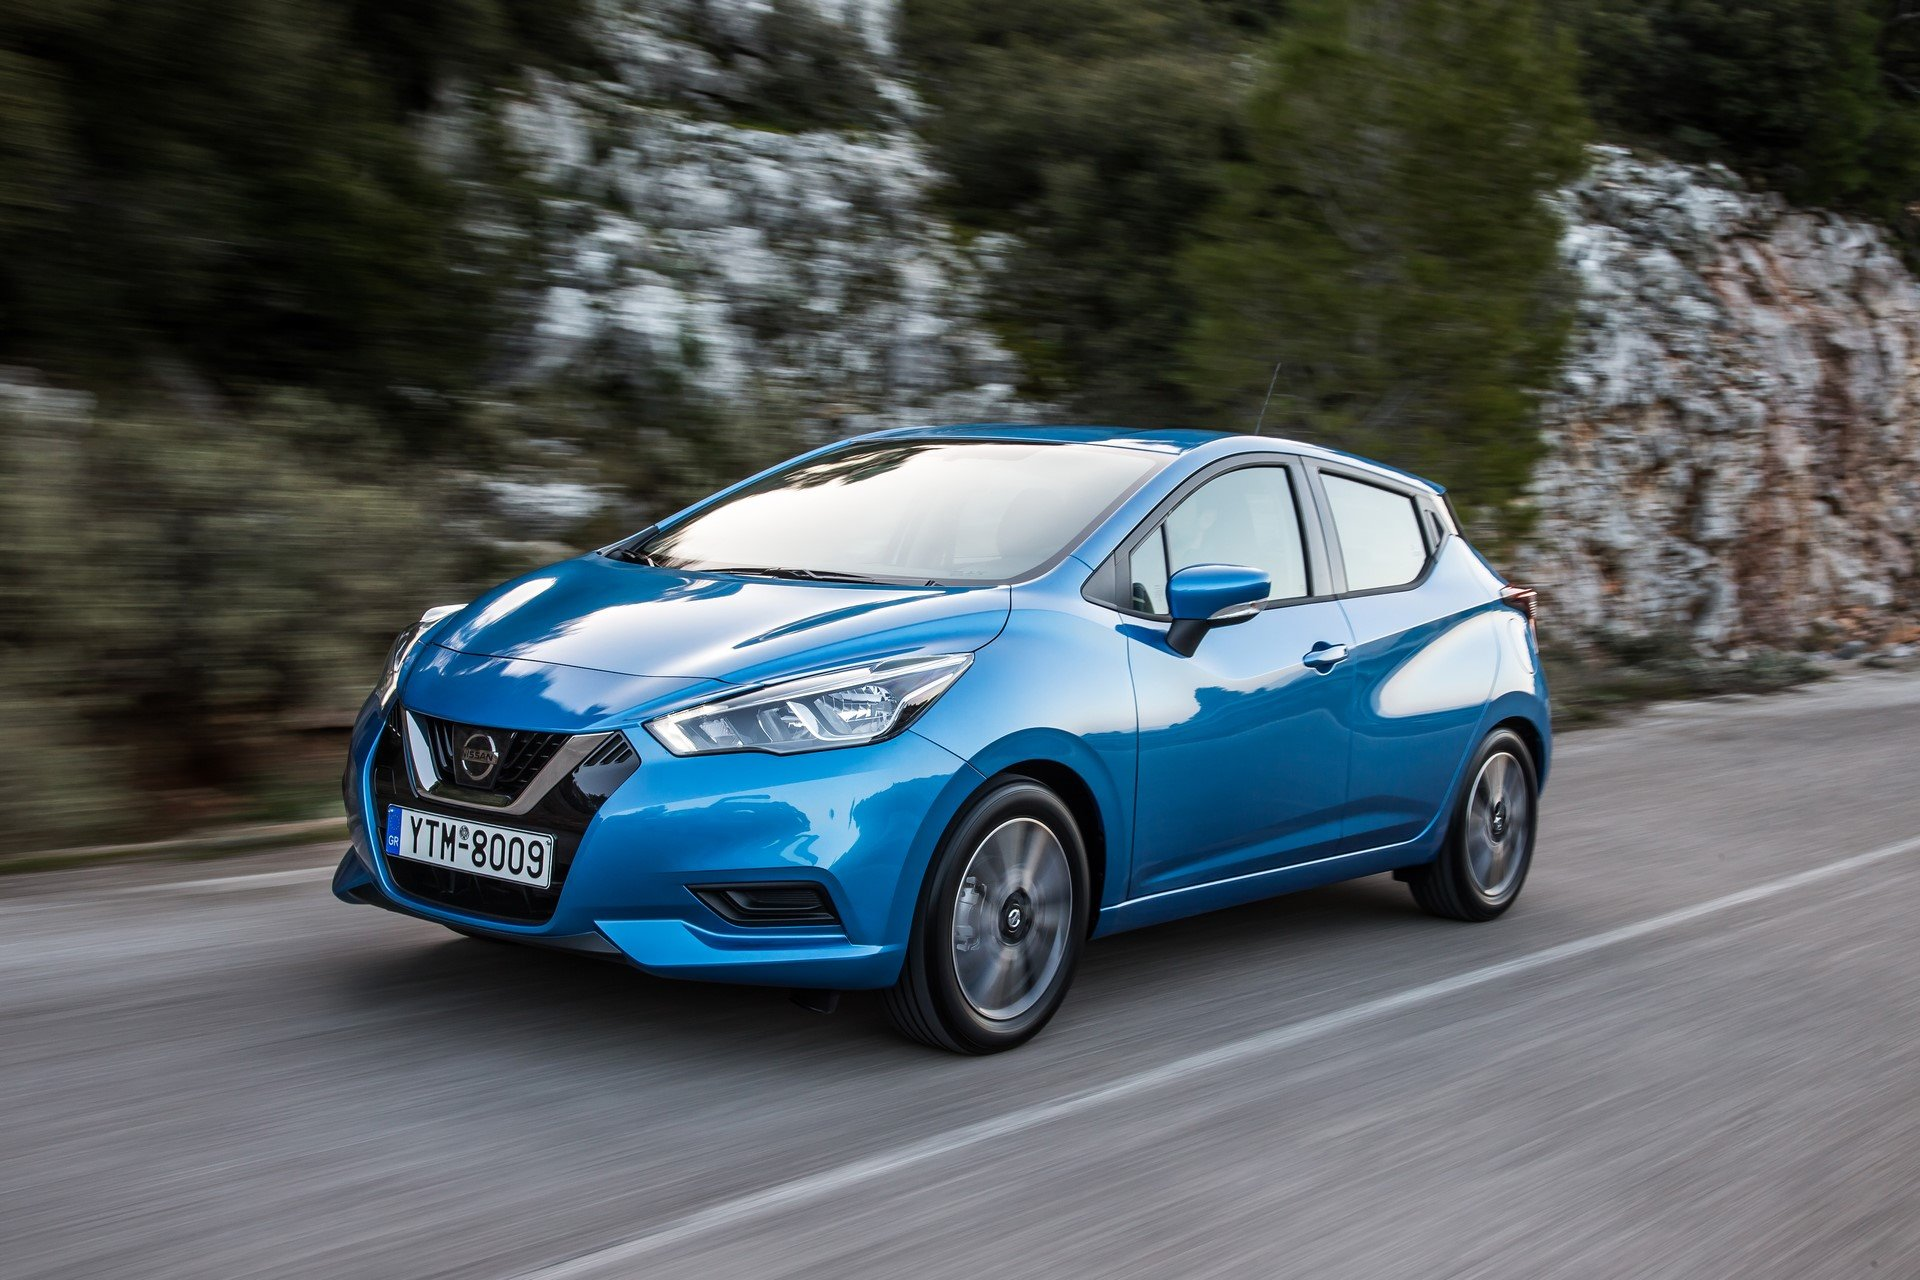 Nissan Micra 2019 Greek (71)